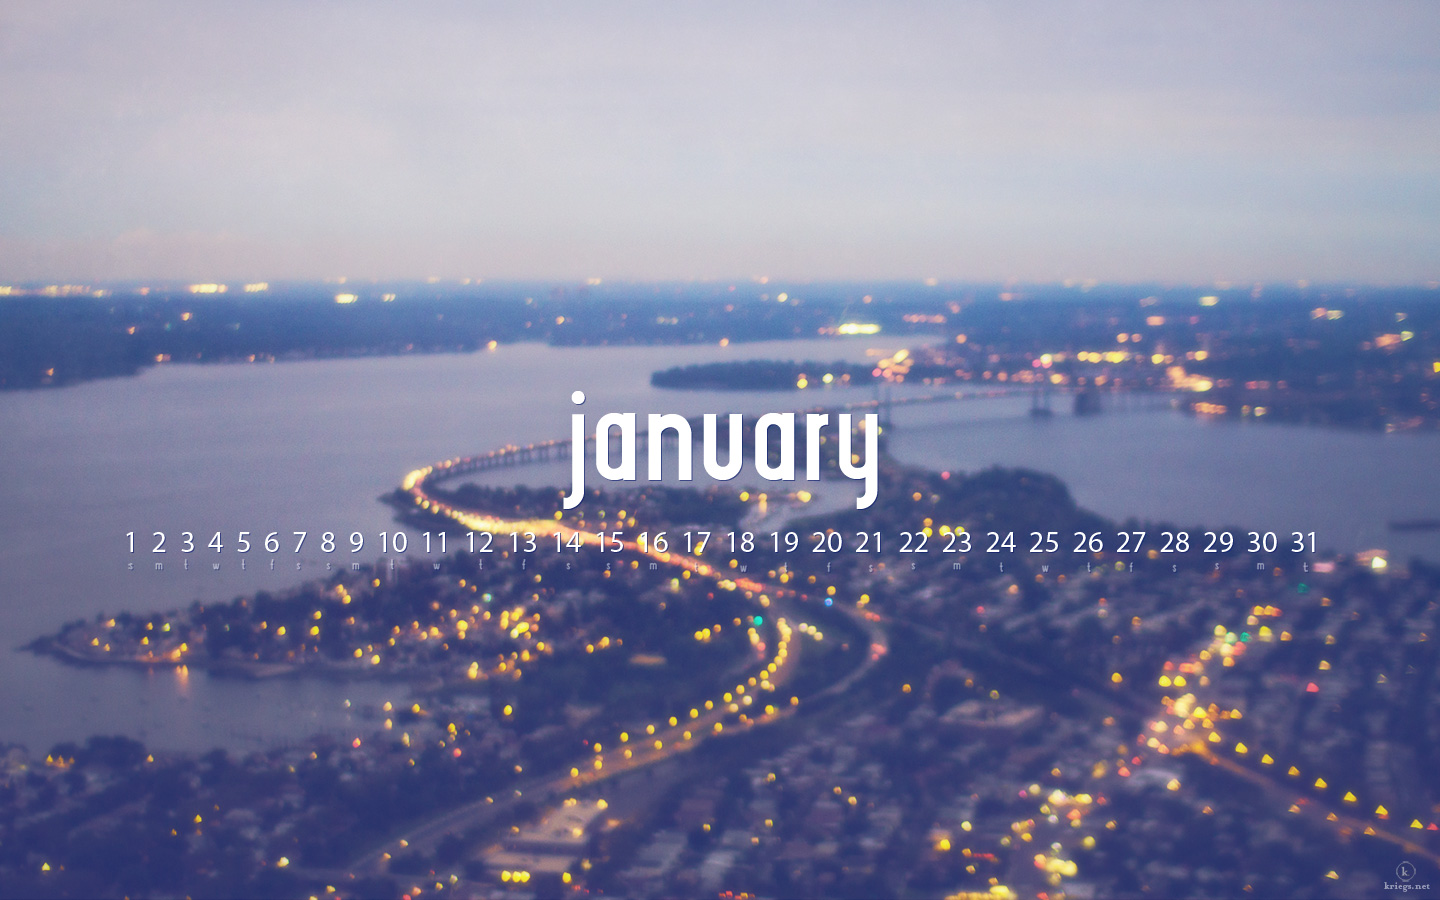 January 2015 Calendar Images and Wallpapers Happy Holidays 2014 1440x900